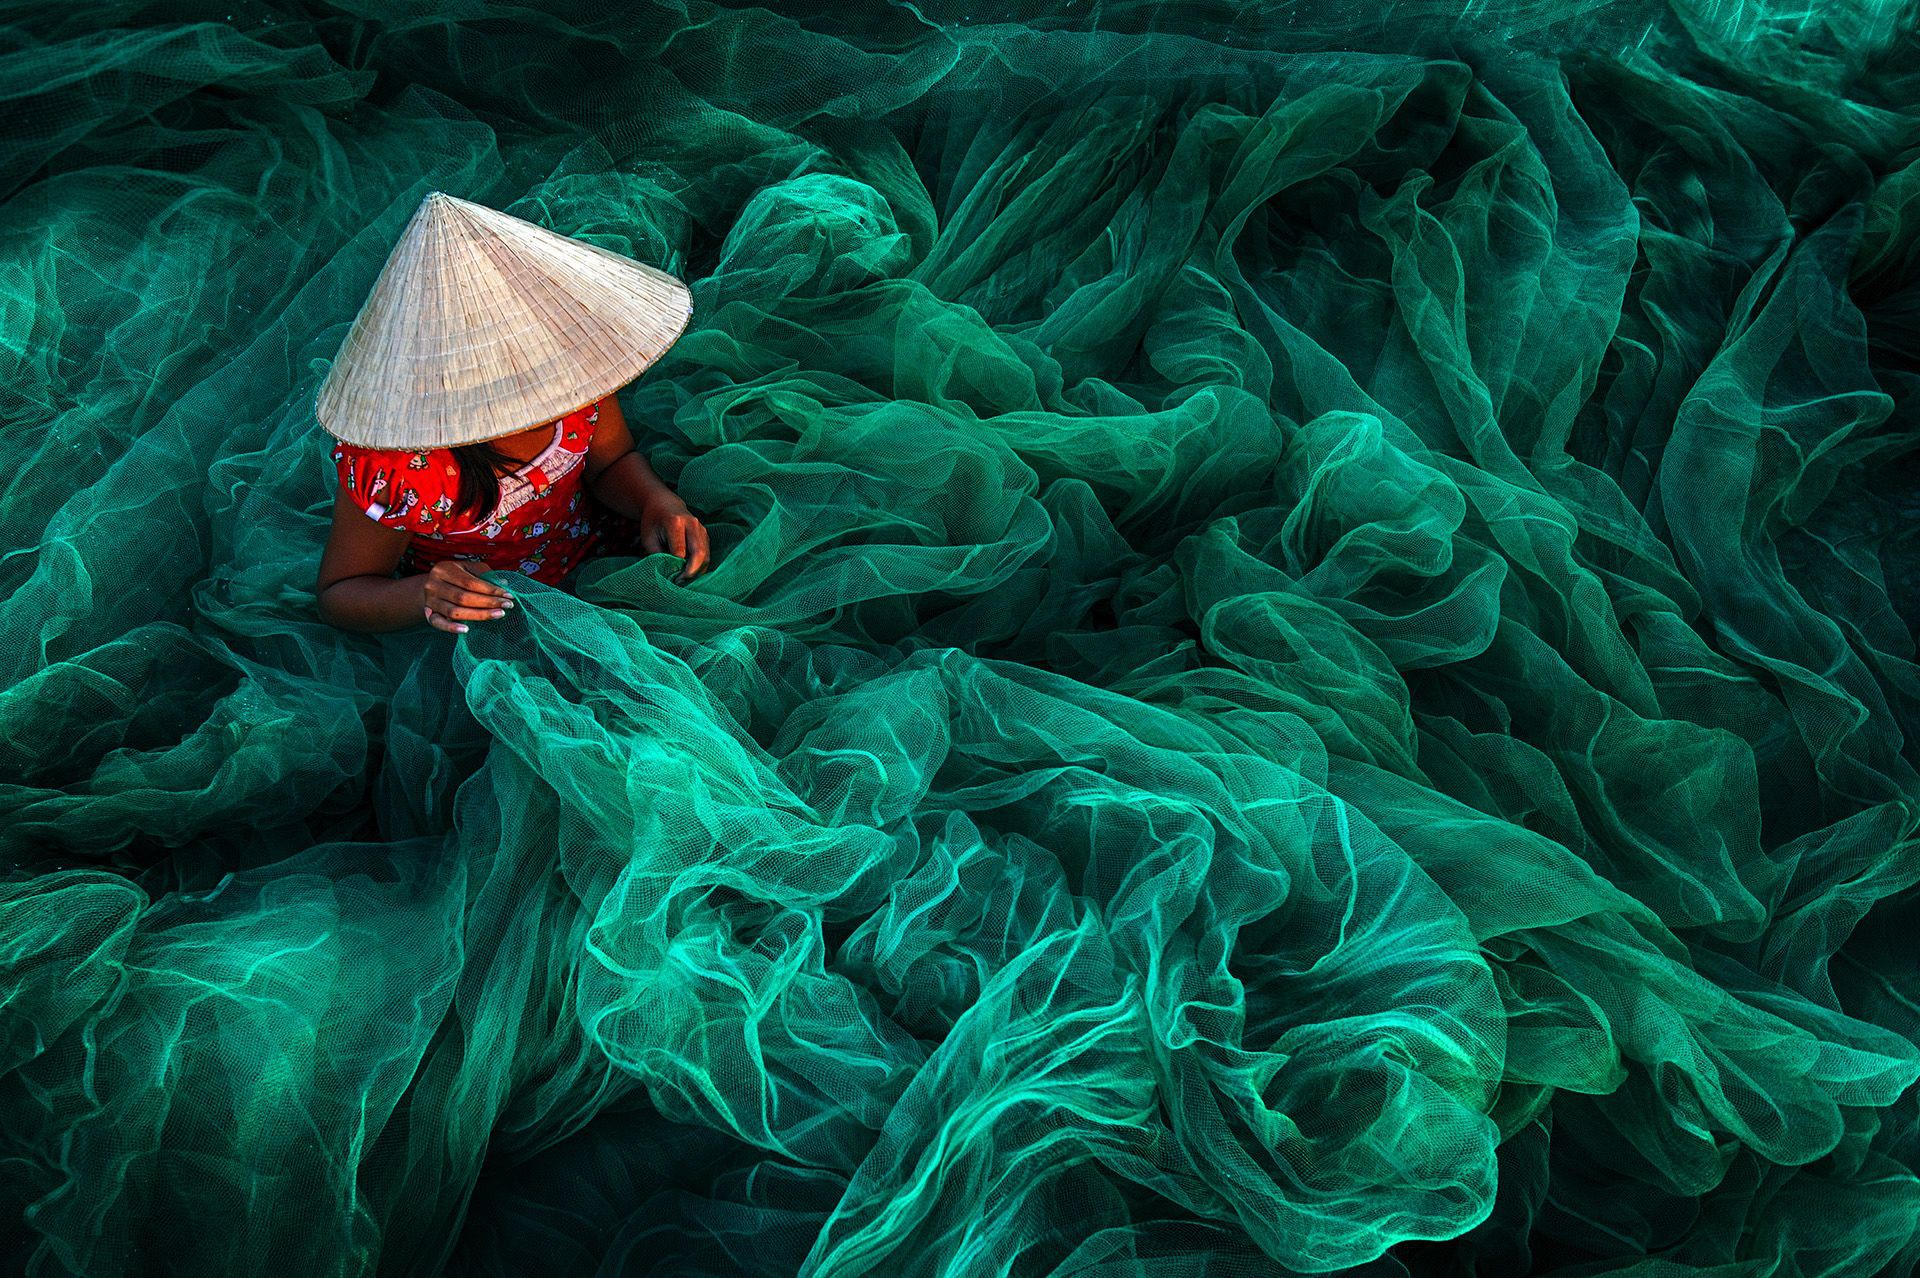 Phan Rang Fishing Net Making © Danny Yen Sin Wong